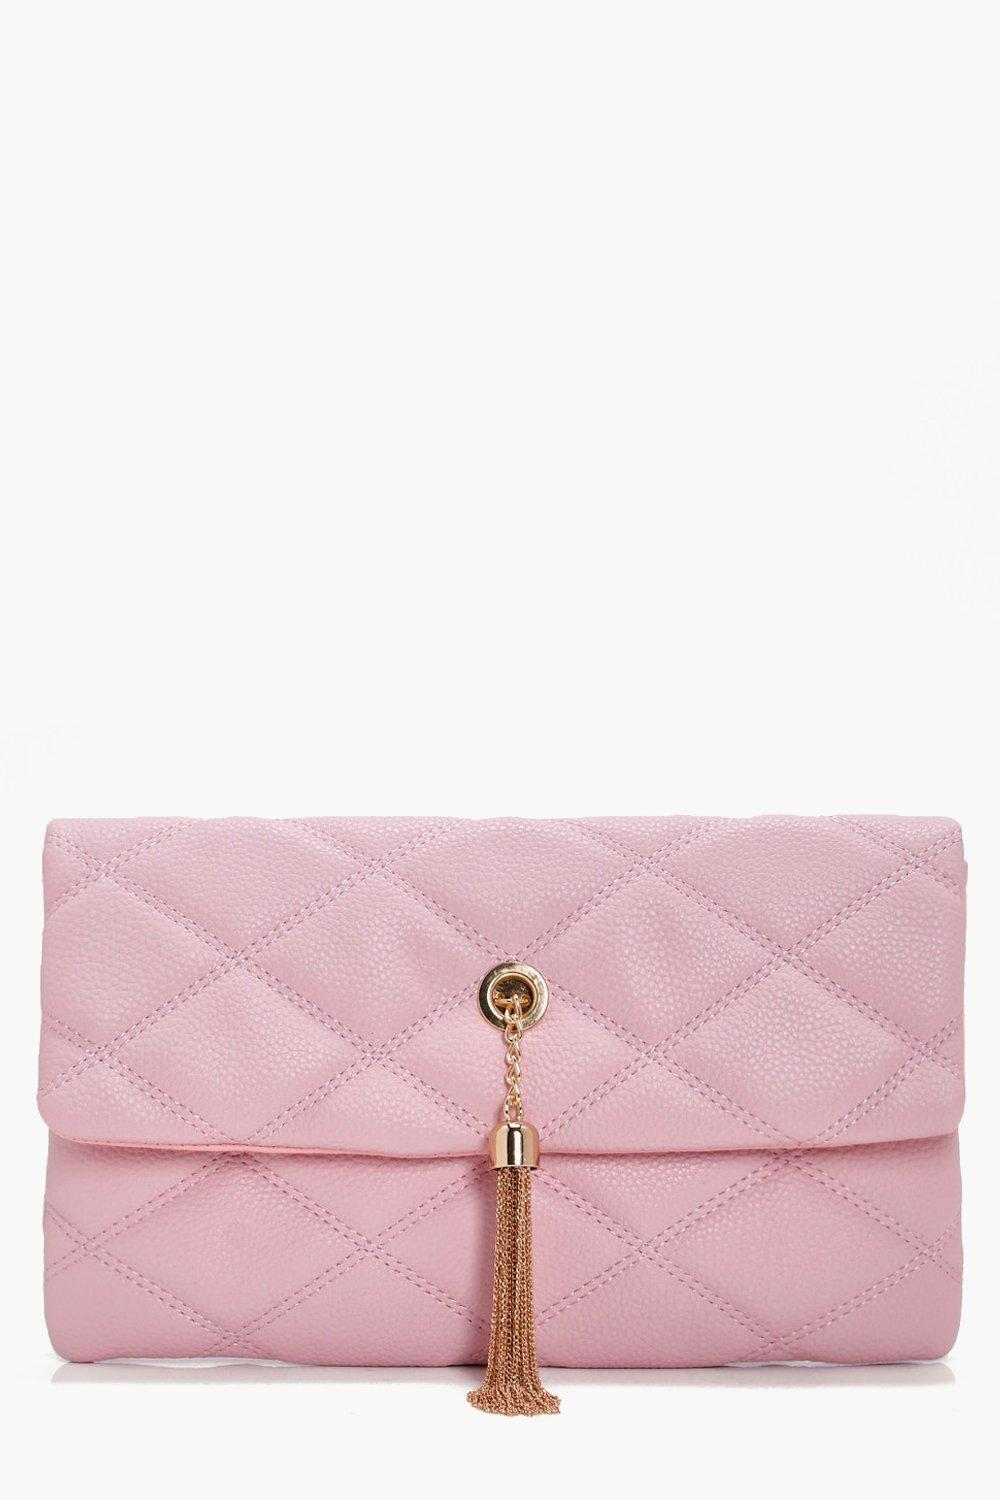 Quilted Metal Tassel Cross Body Bag - nude - Laure